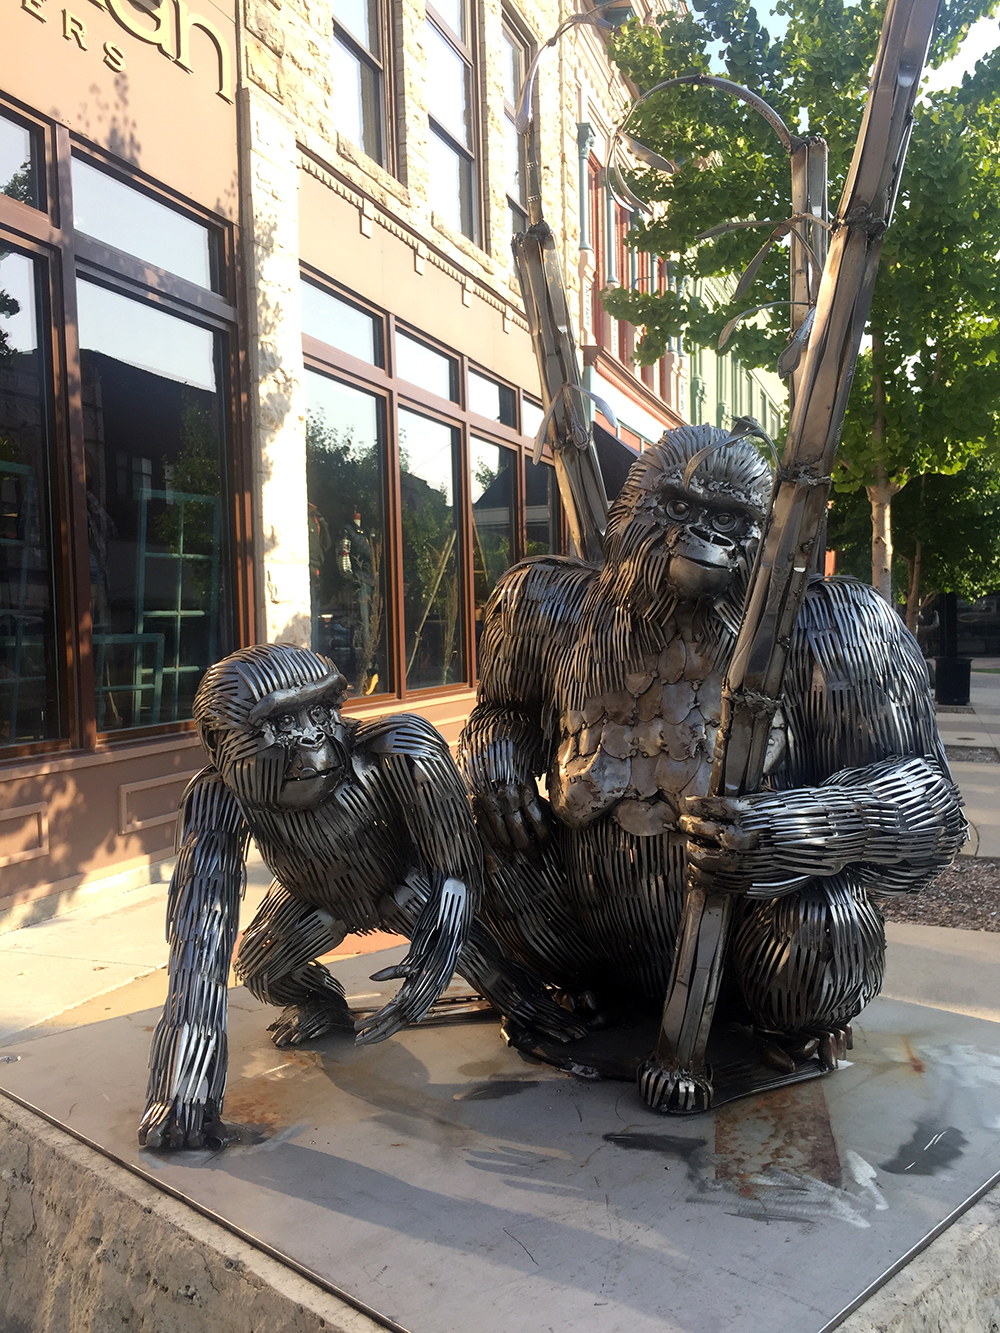 Two gorillas made from metal utensils along the River City Sculptures on Parade in Mason City, Iowa